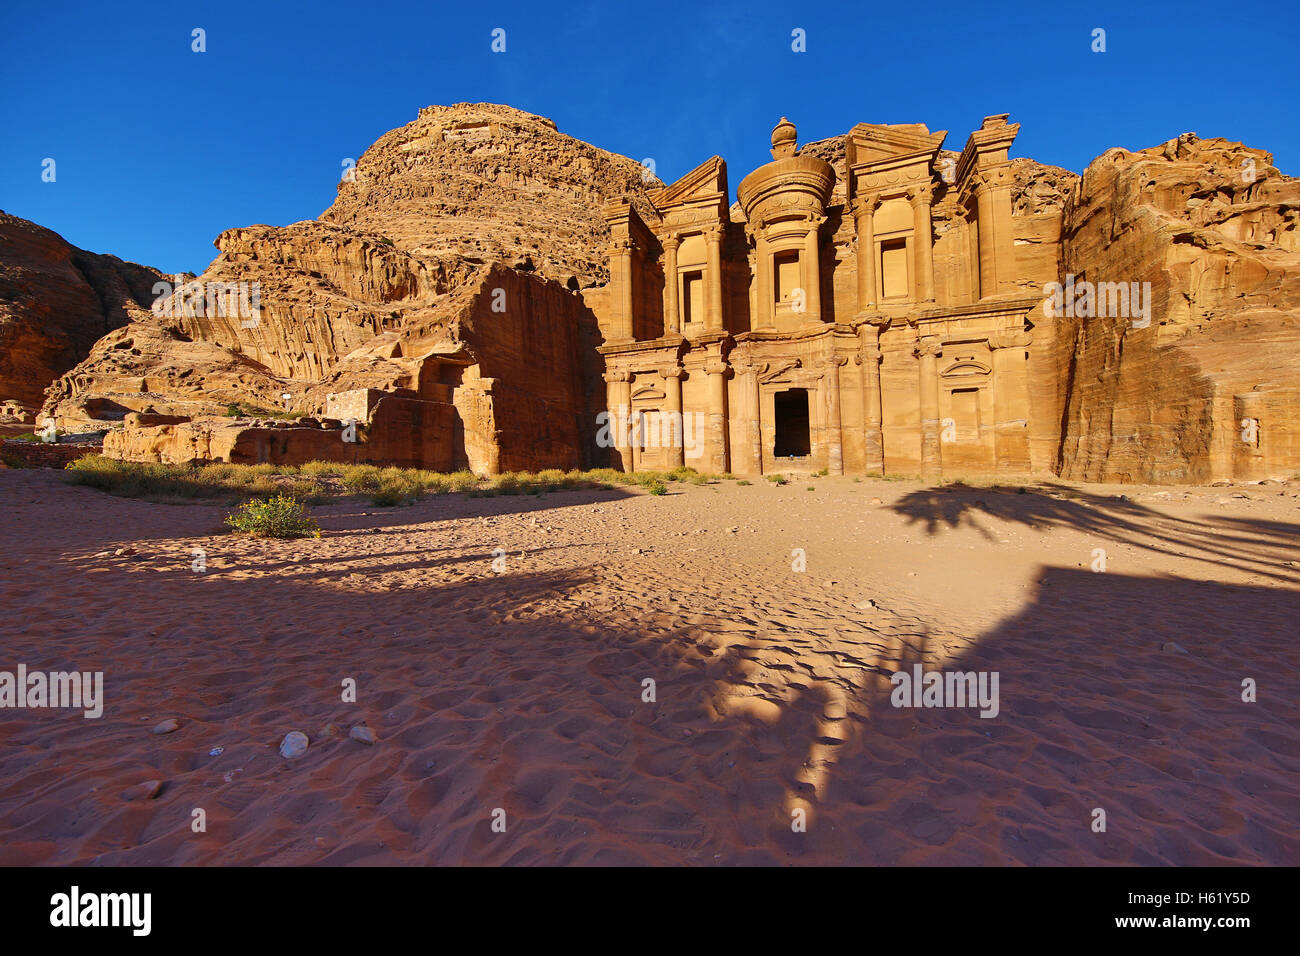 The Monastery, Ad-Deir, in the rock city of Petra, Jordan - Stock Image